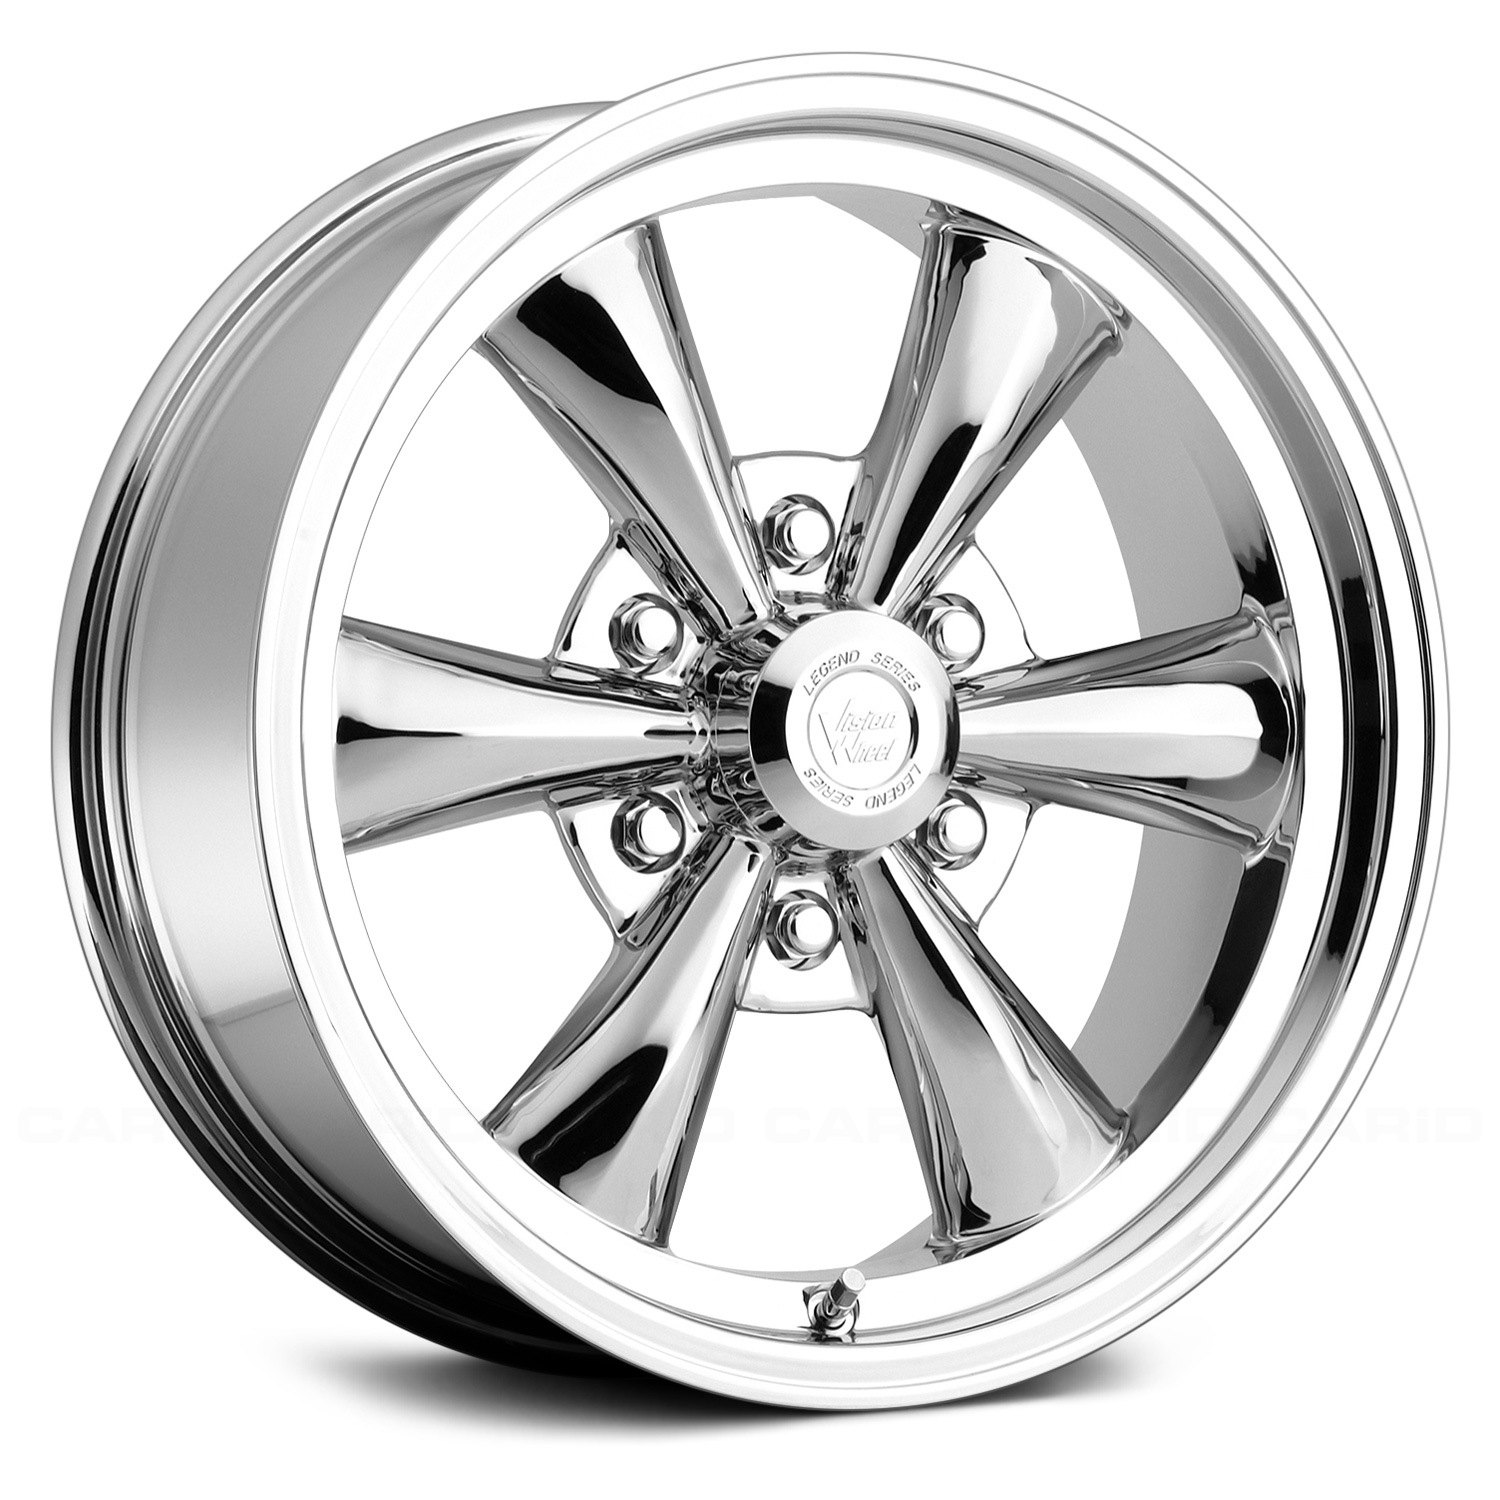 Vision 174 141 Legend 6 Wheels Chrome Rims